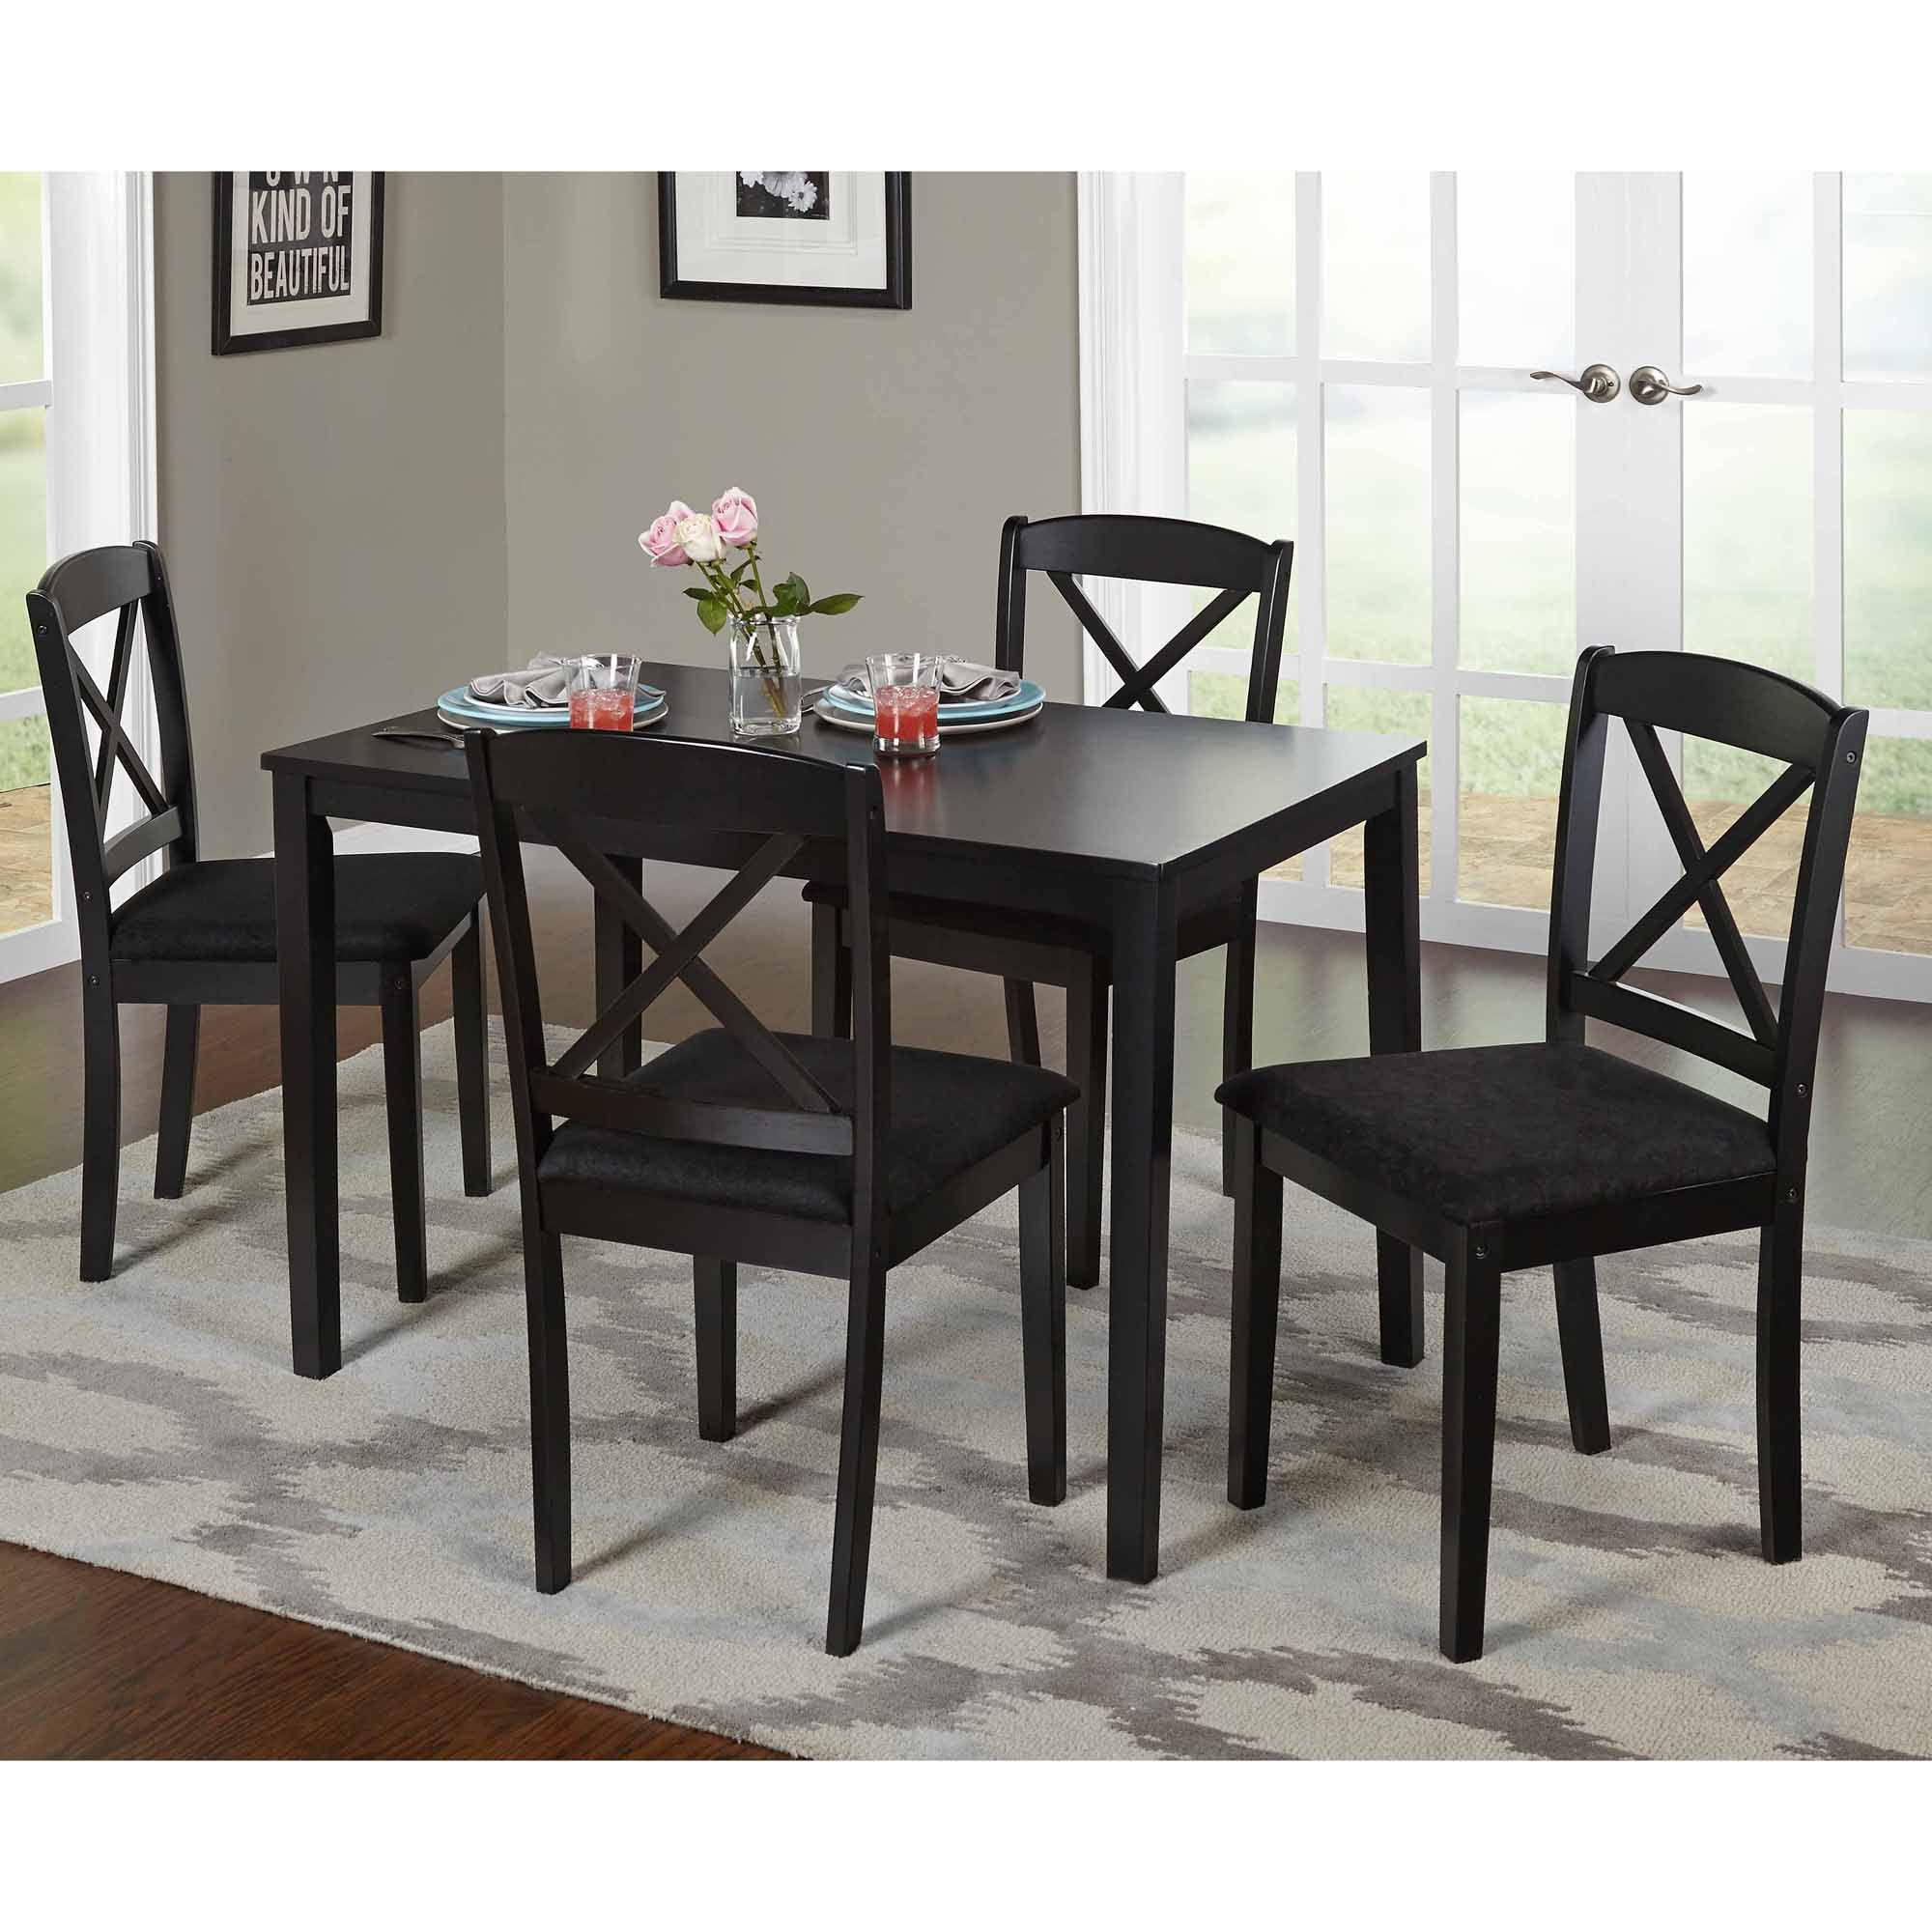 Mainstays 5Piece Dining Set  Walmart  Dream Home&decor Alluring Dining Room Tables Walmart Inspiration